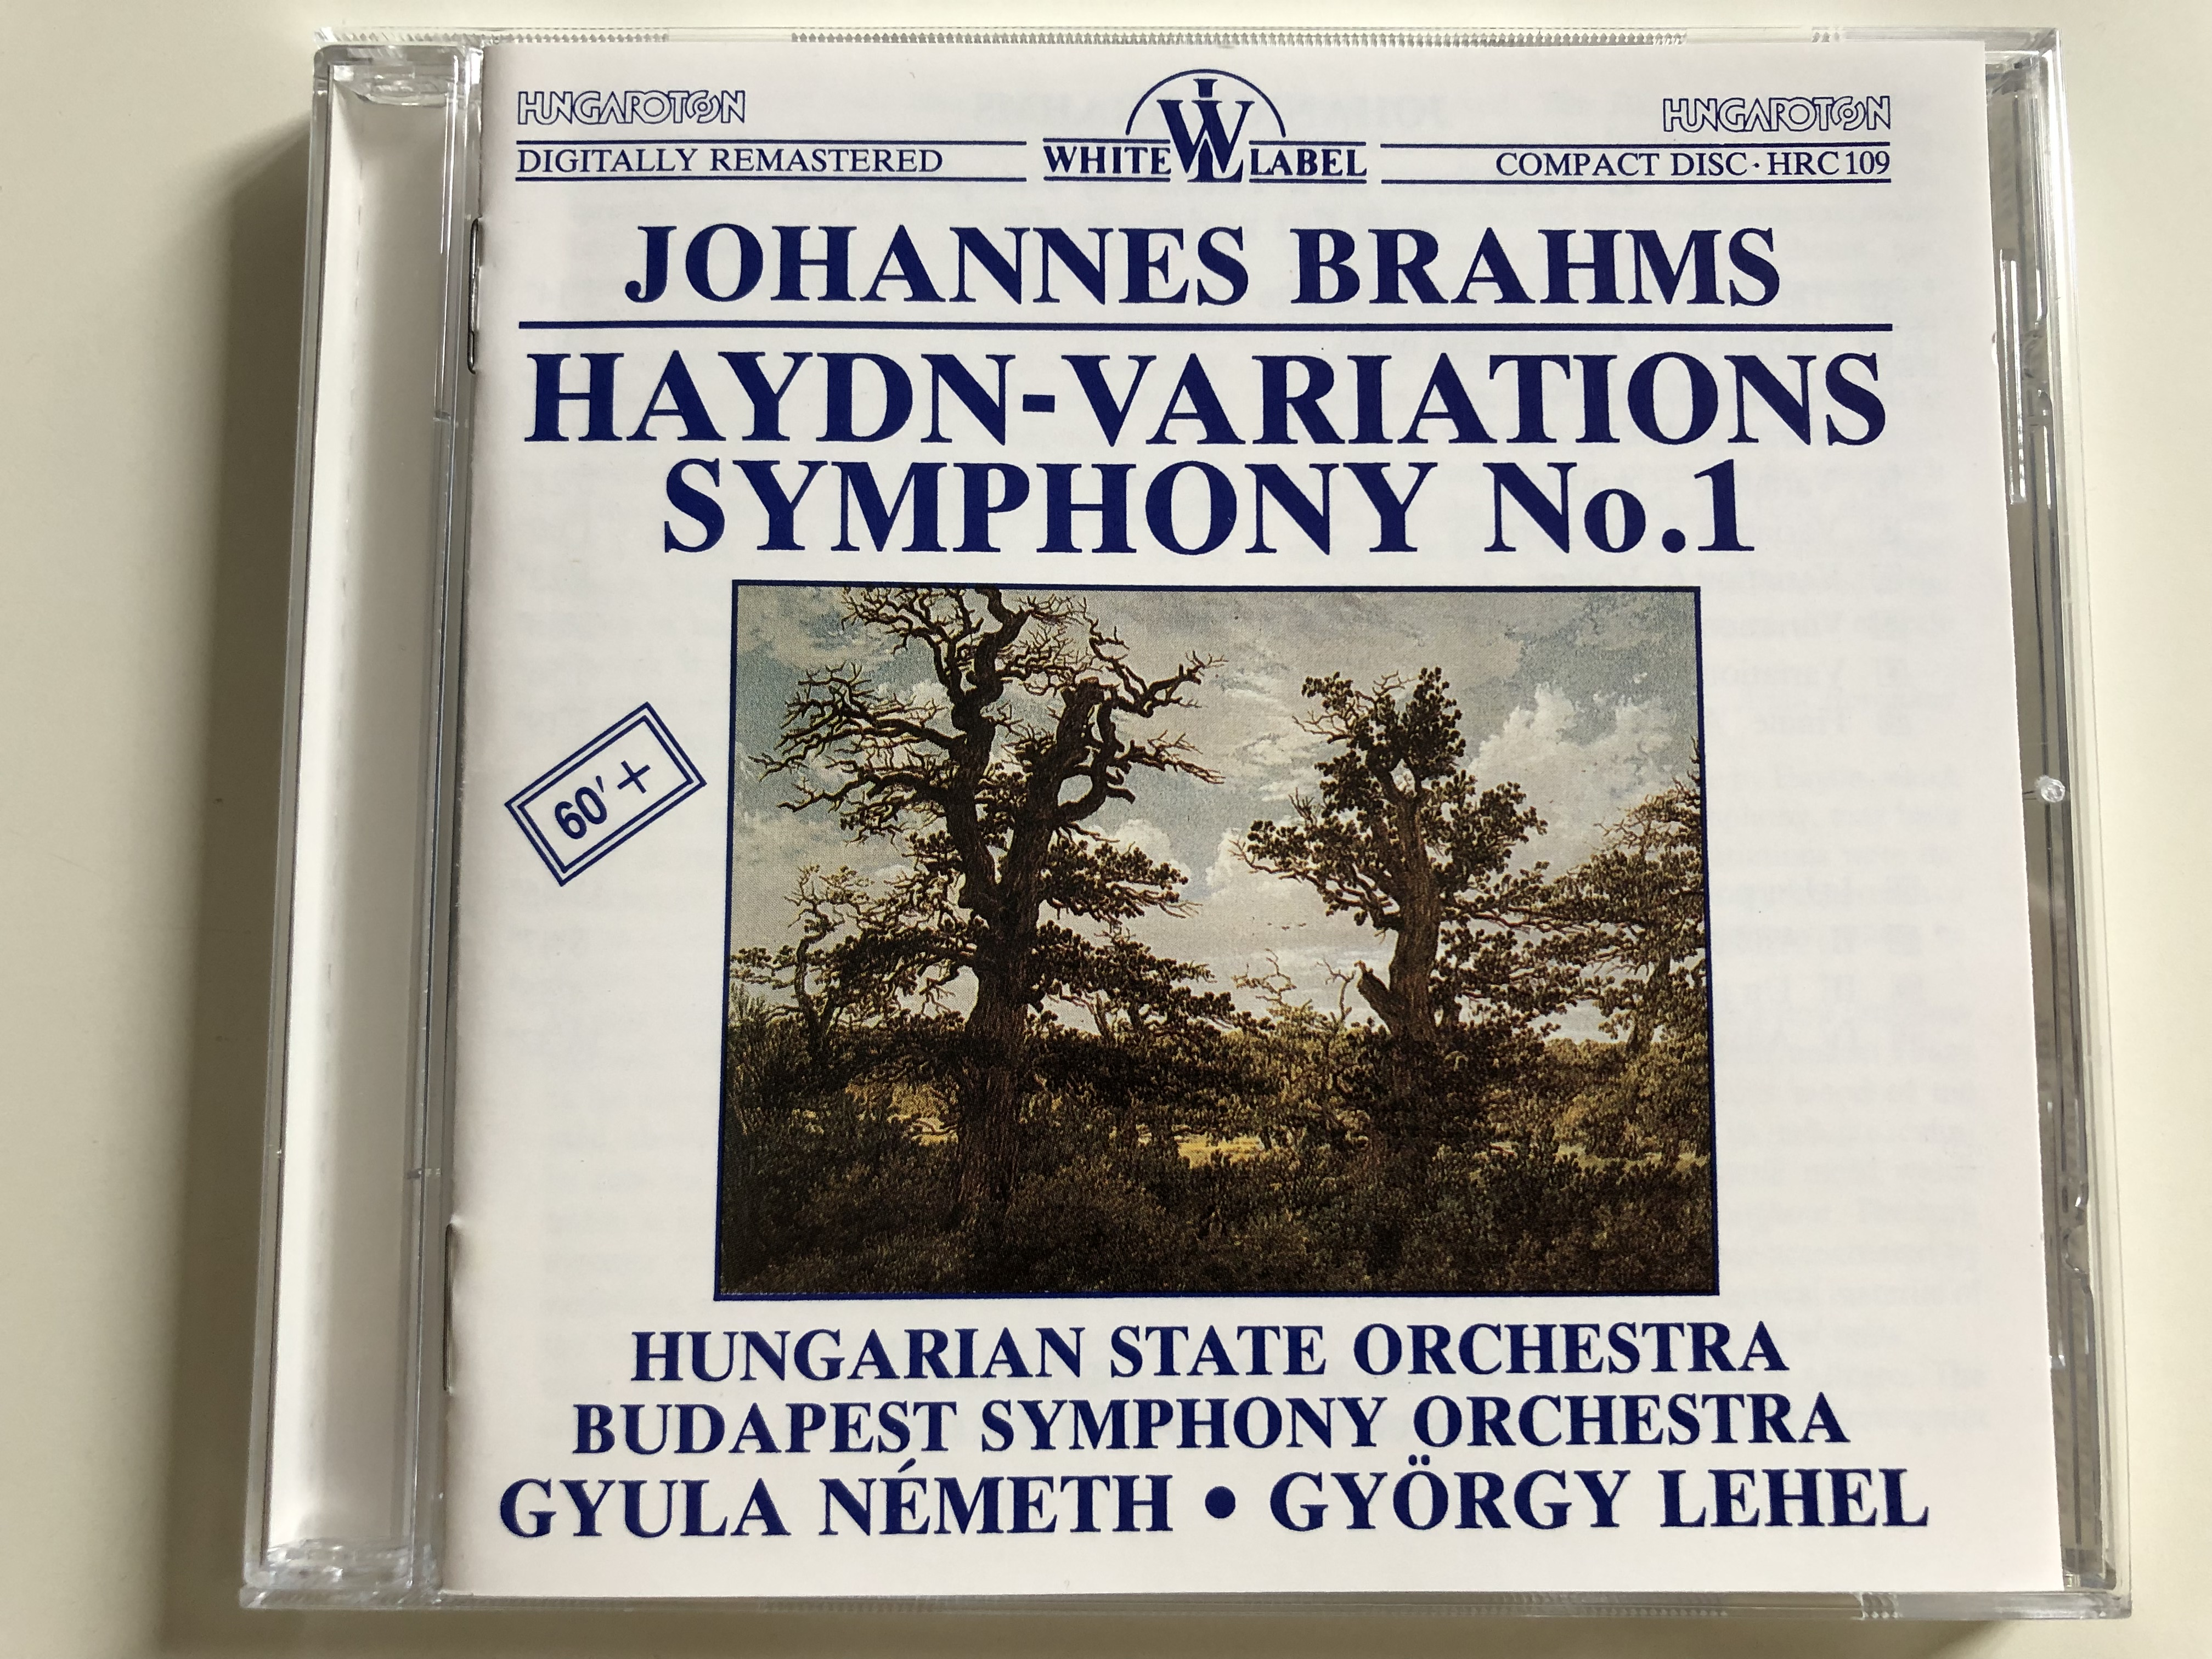 johannes-brahms-haydn-variations-symphony-no.1-hungarian-state-orchestra-budapest-symphony-orchestra-conducted-by-gyula-n-meth-gy-rgy-lehel-hungaroton-white-label-audio-cd-hrc-109-1-.jpg